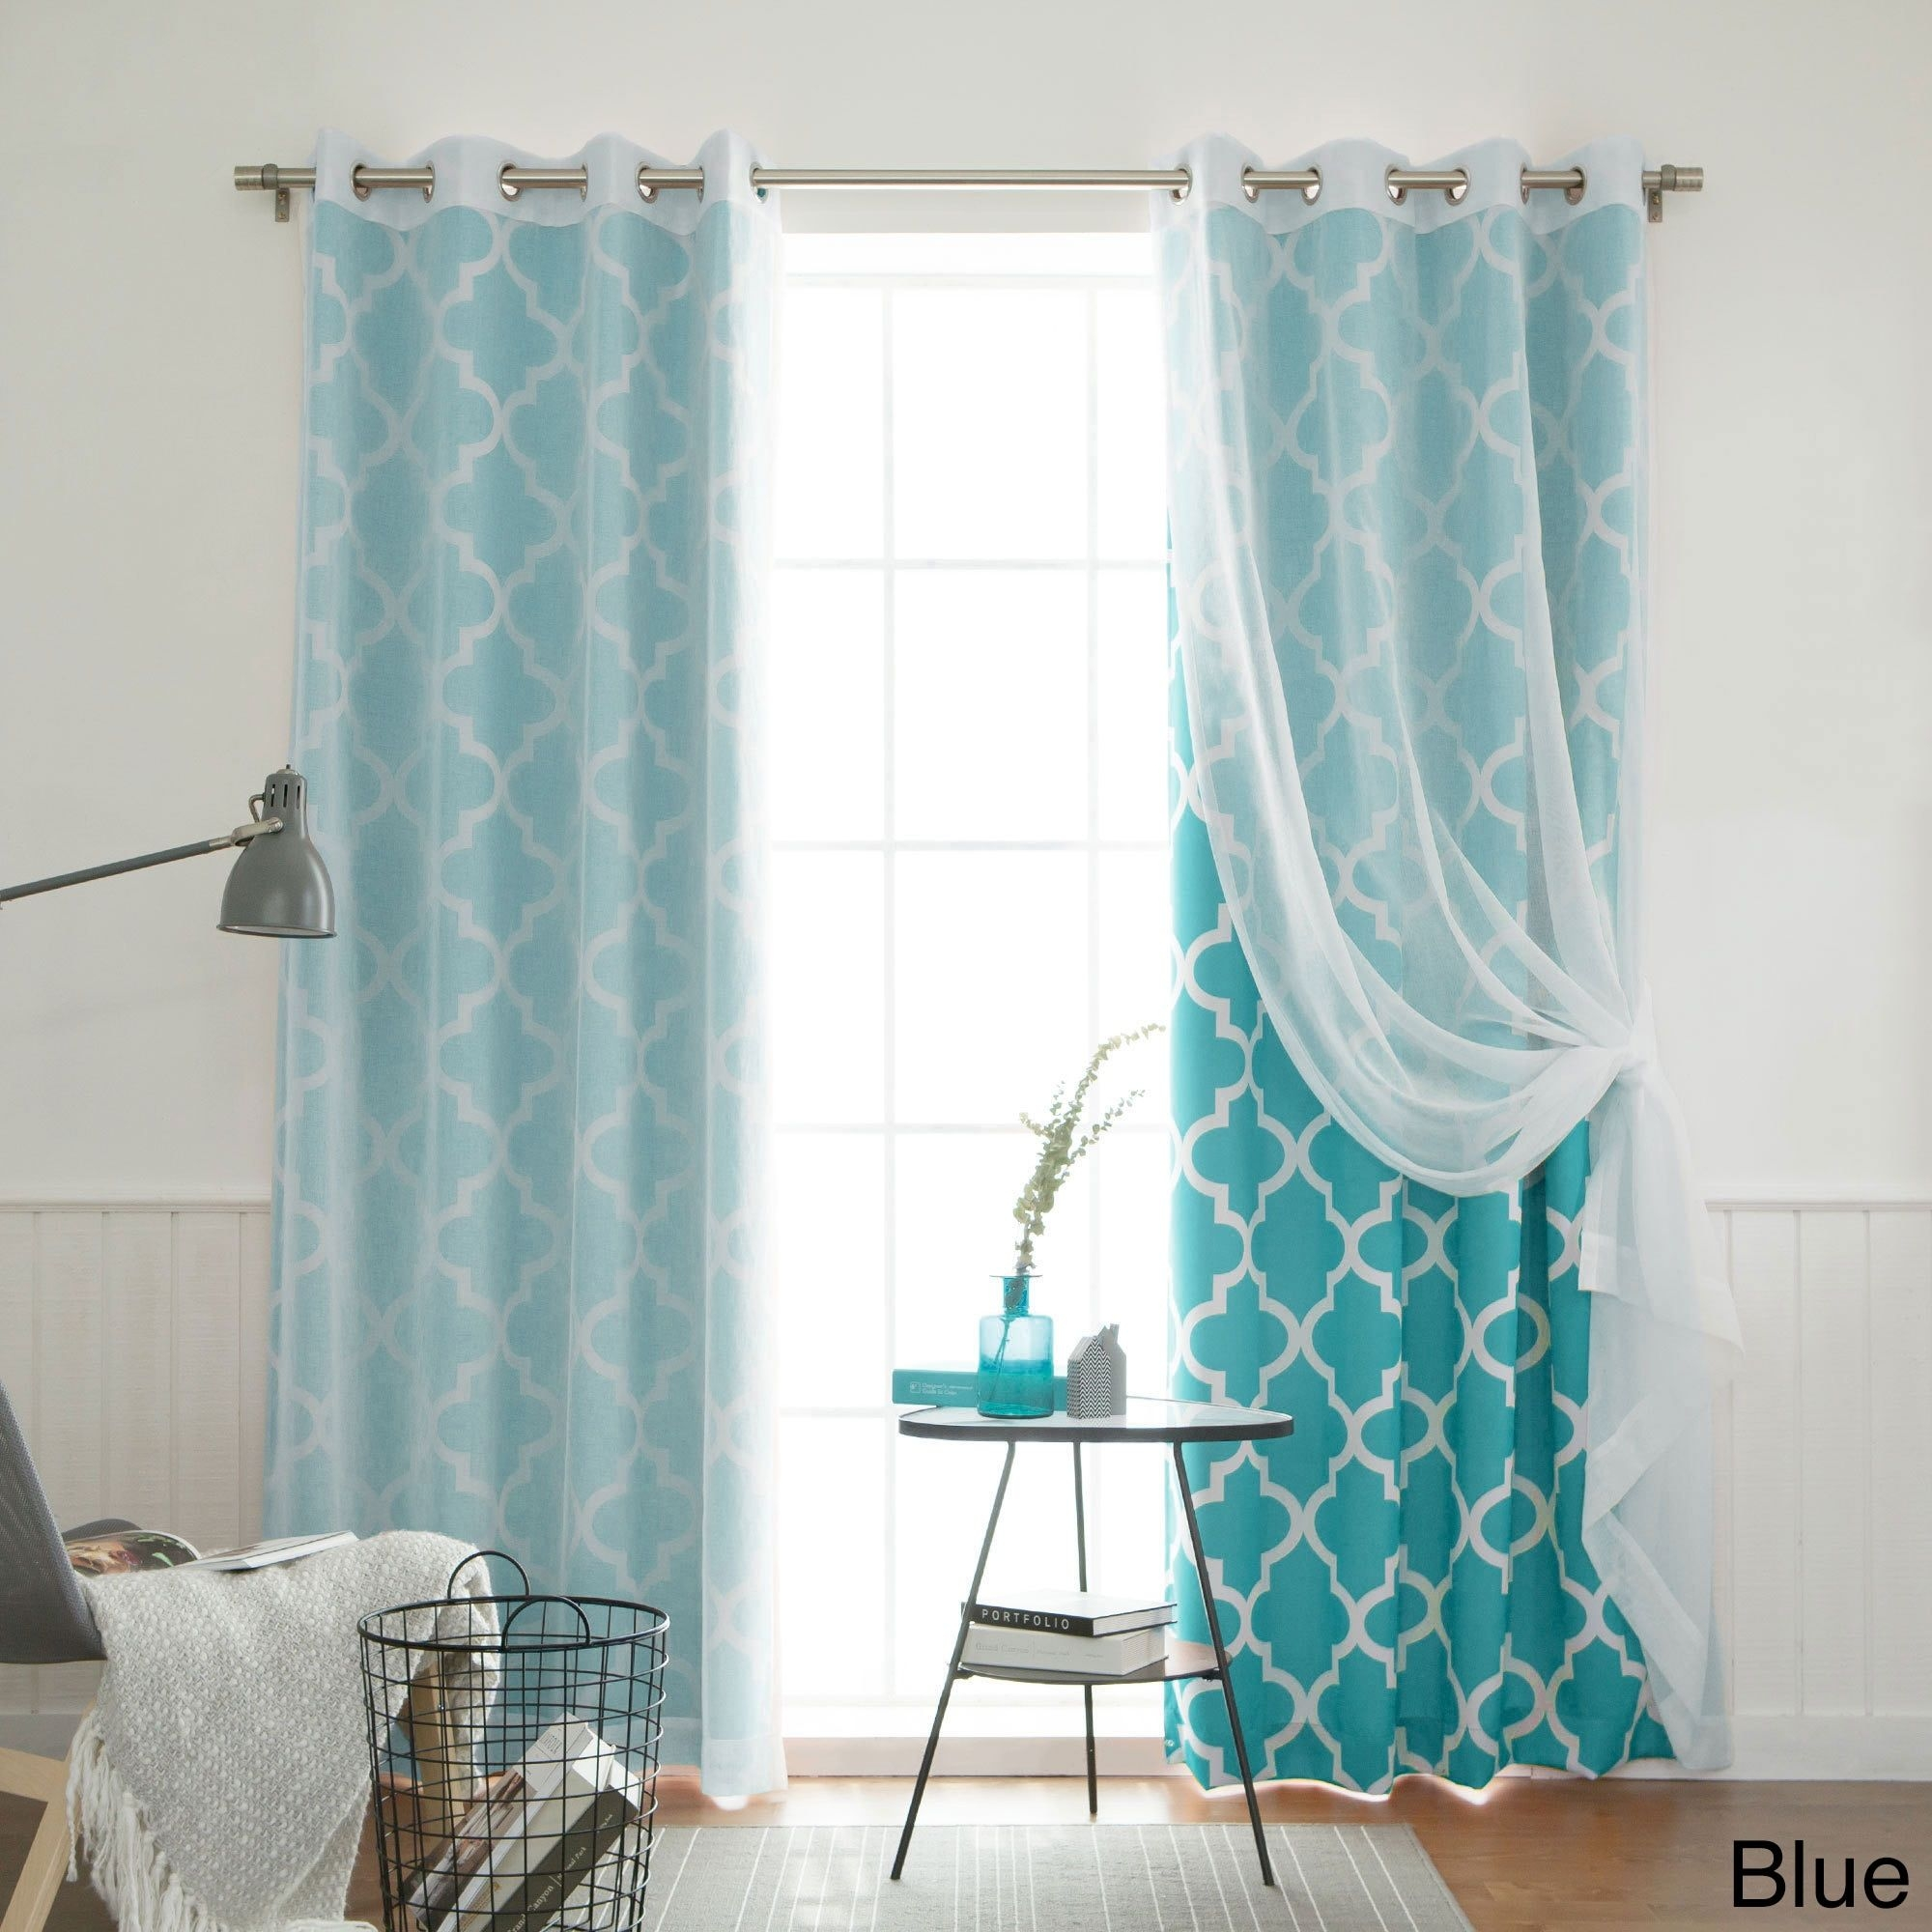 Aurora Home Mix And Match Curtains Muji Sheer Moroccan 84 Inch 4 Throughout Morrocan Style Curtains (View 15 of 15)